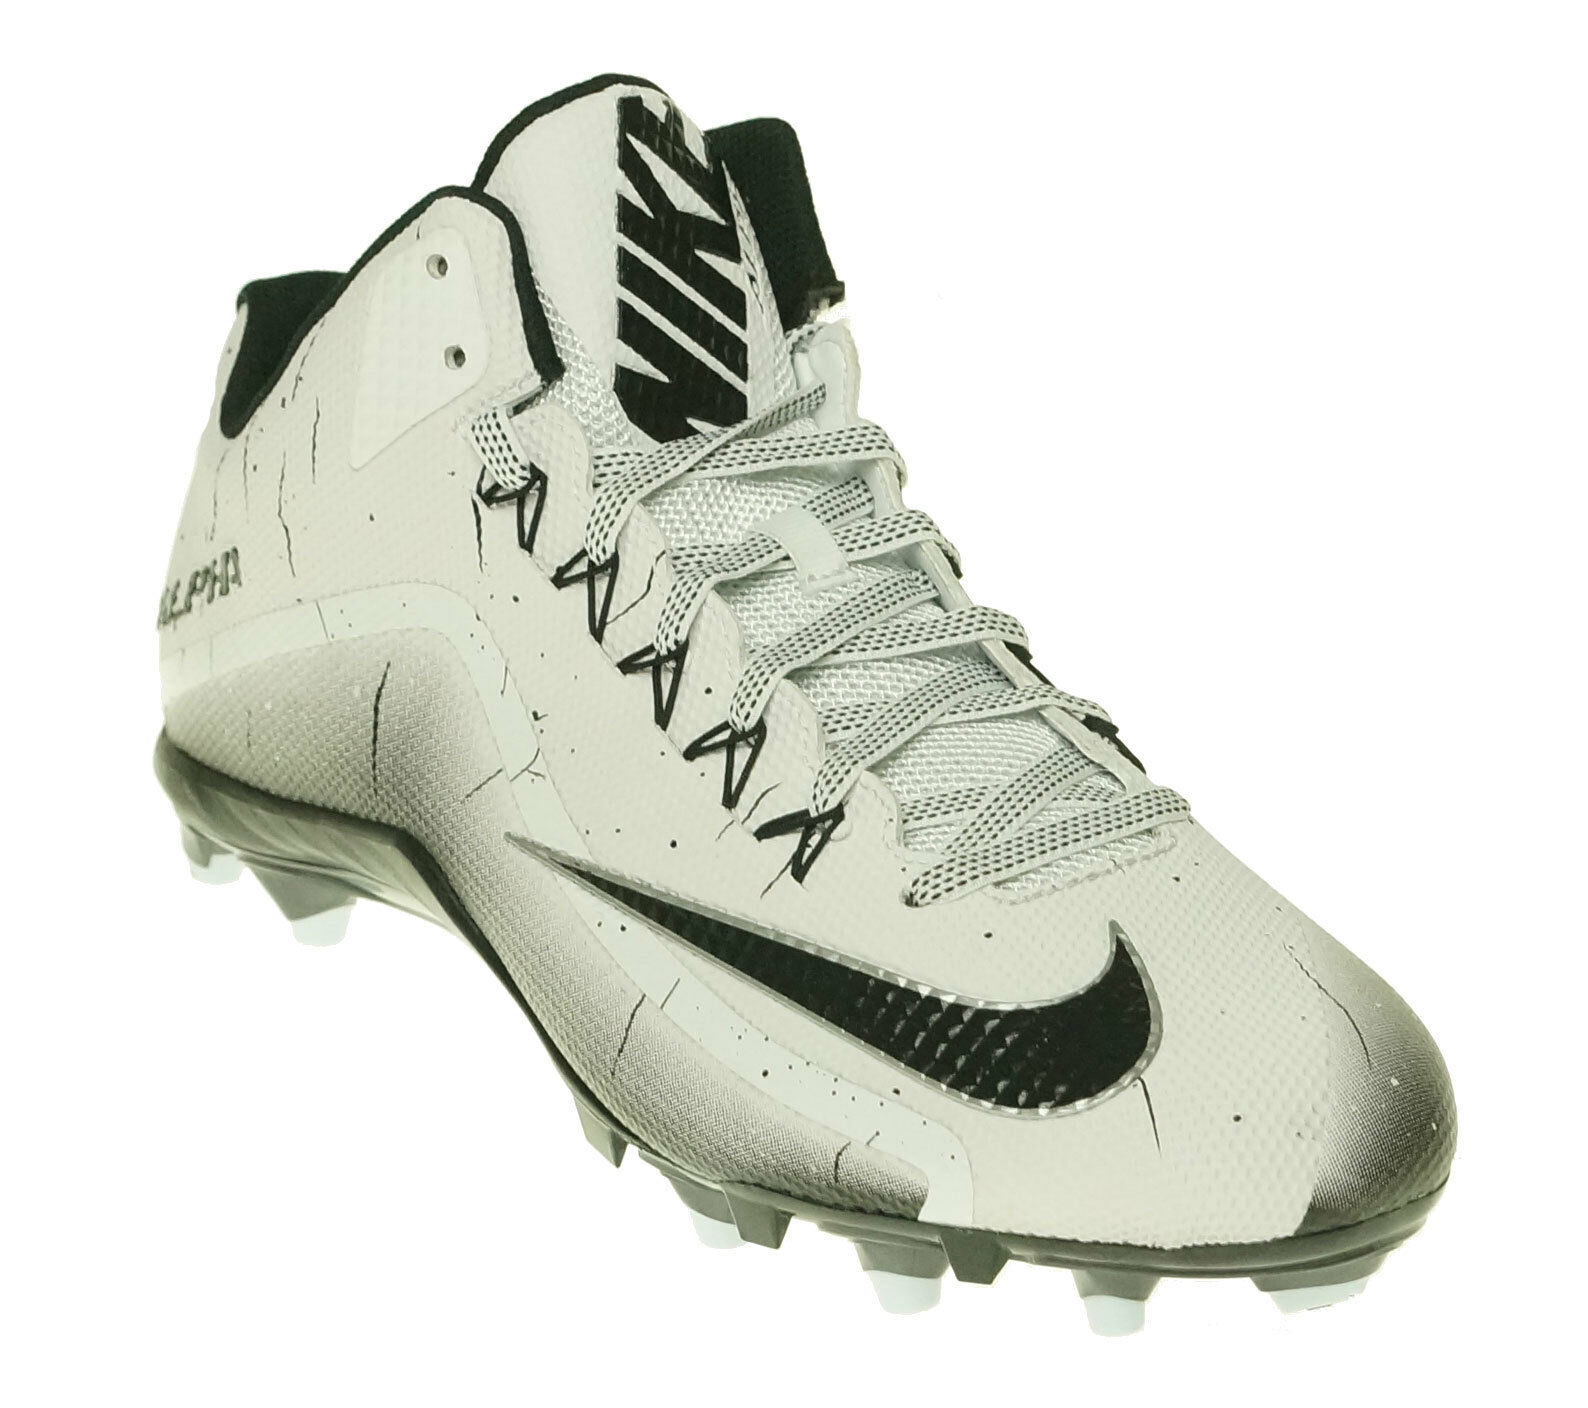 Nike Men's Alpha Pro 2 3/4 TD Football Cleated Shoes Black White Size 14 100